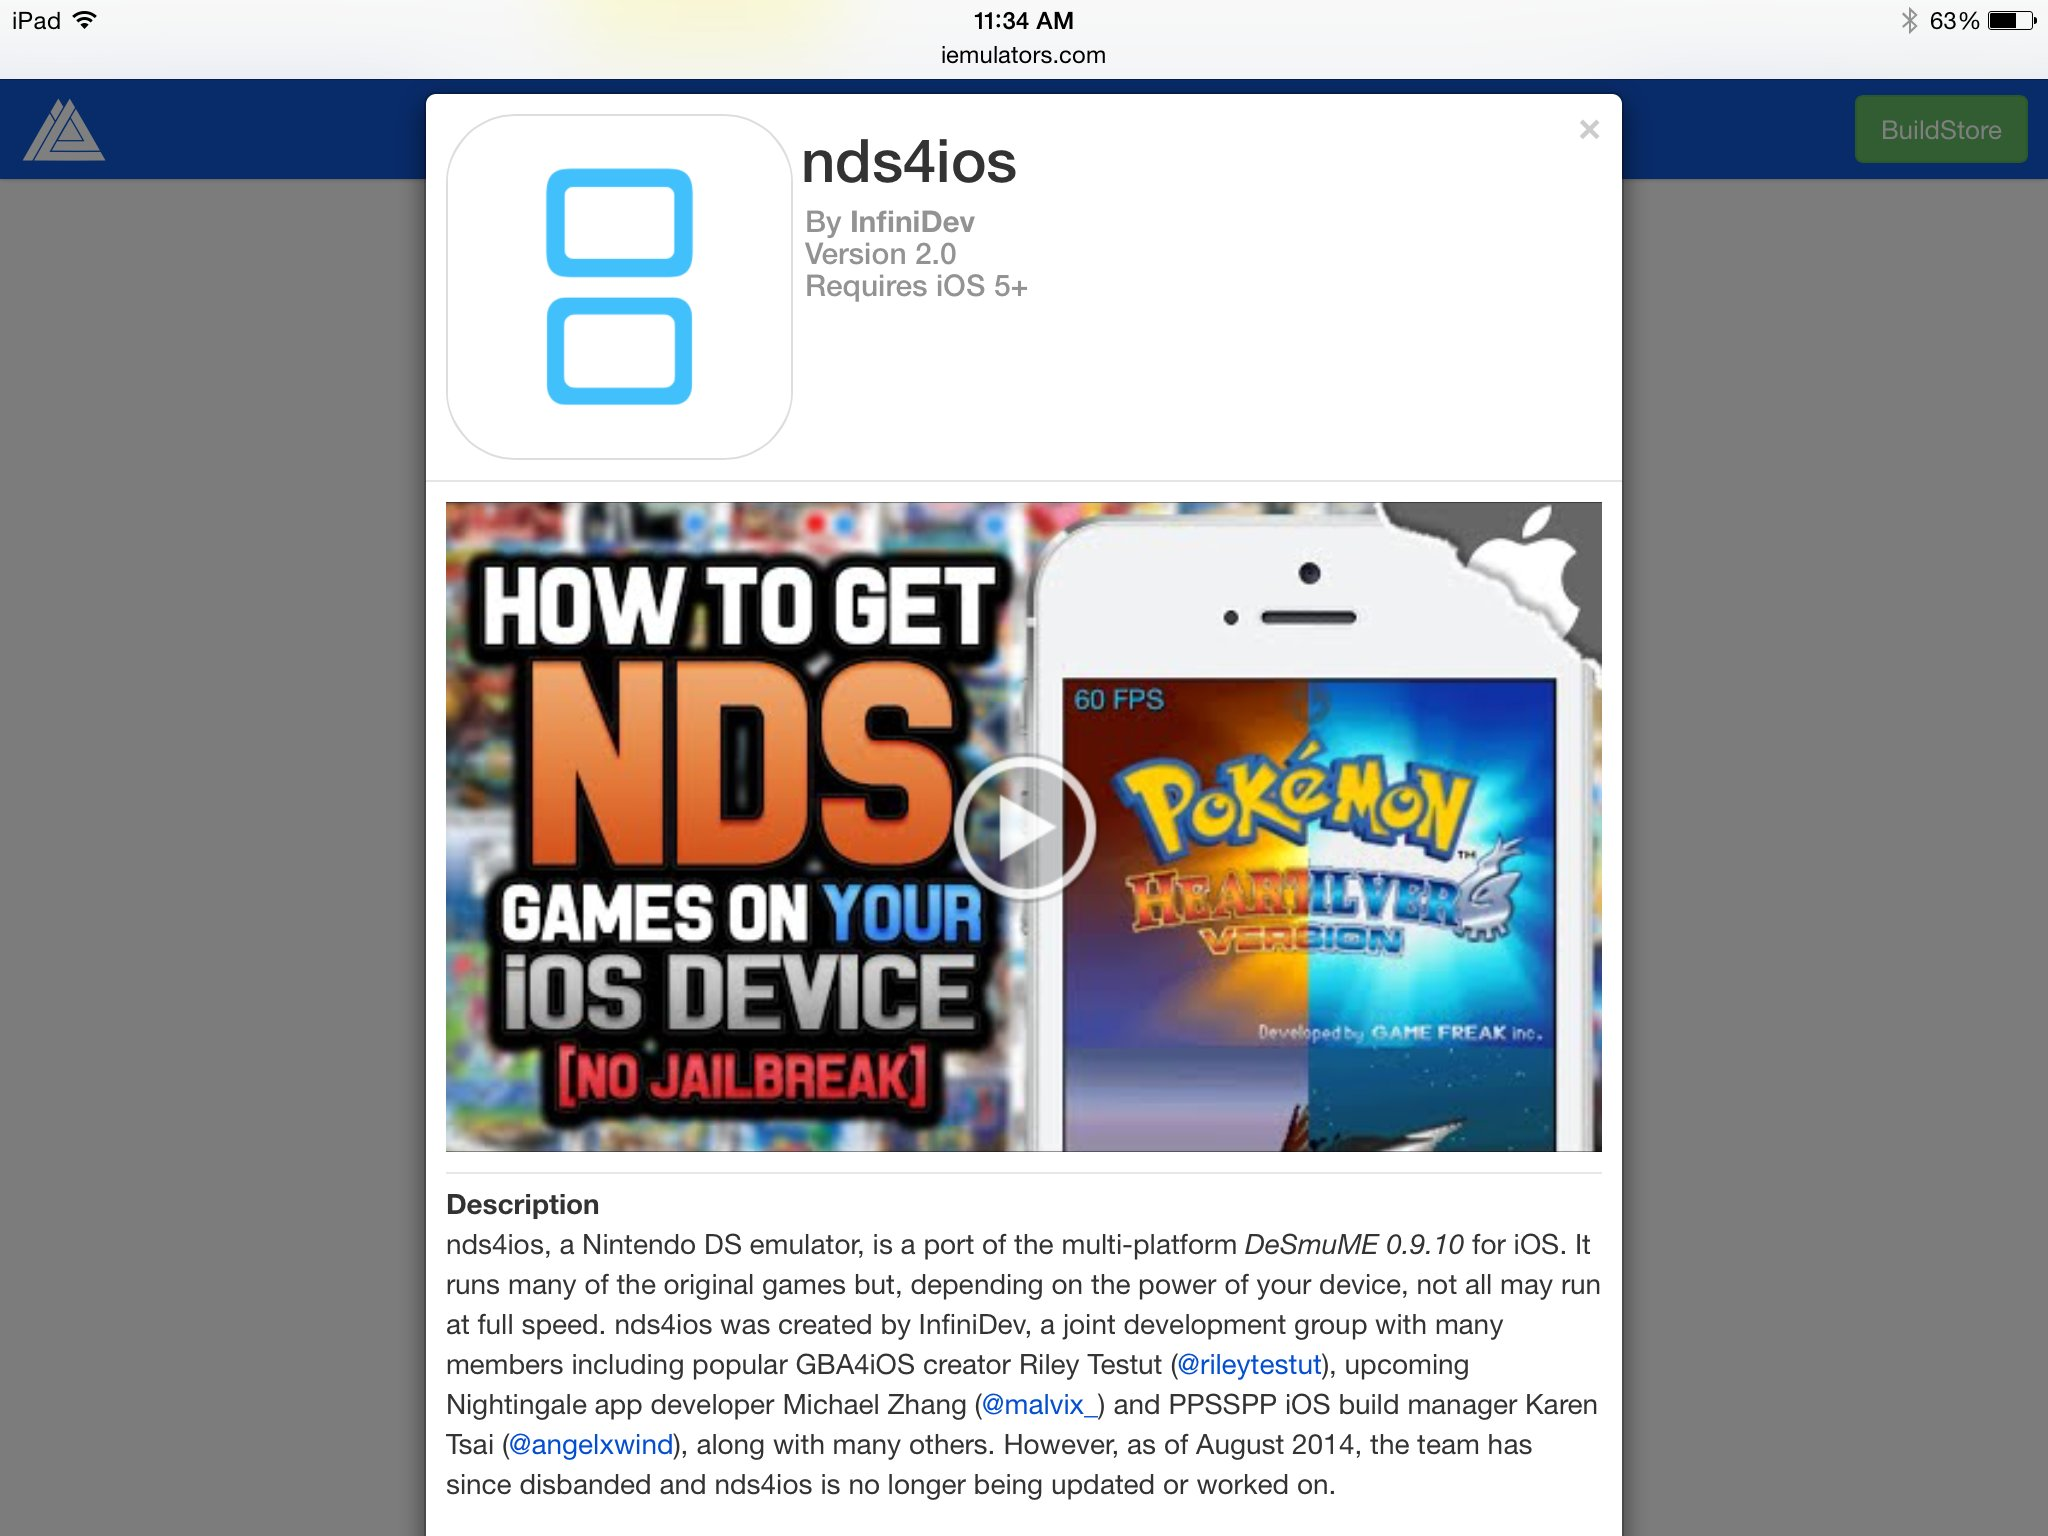 You Can Install Nintendo DS Emulator 'nds4ios' Right Now Without Jailbreaking